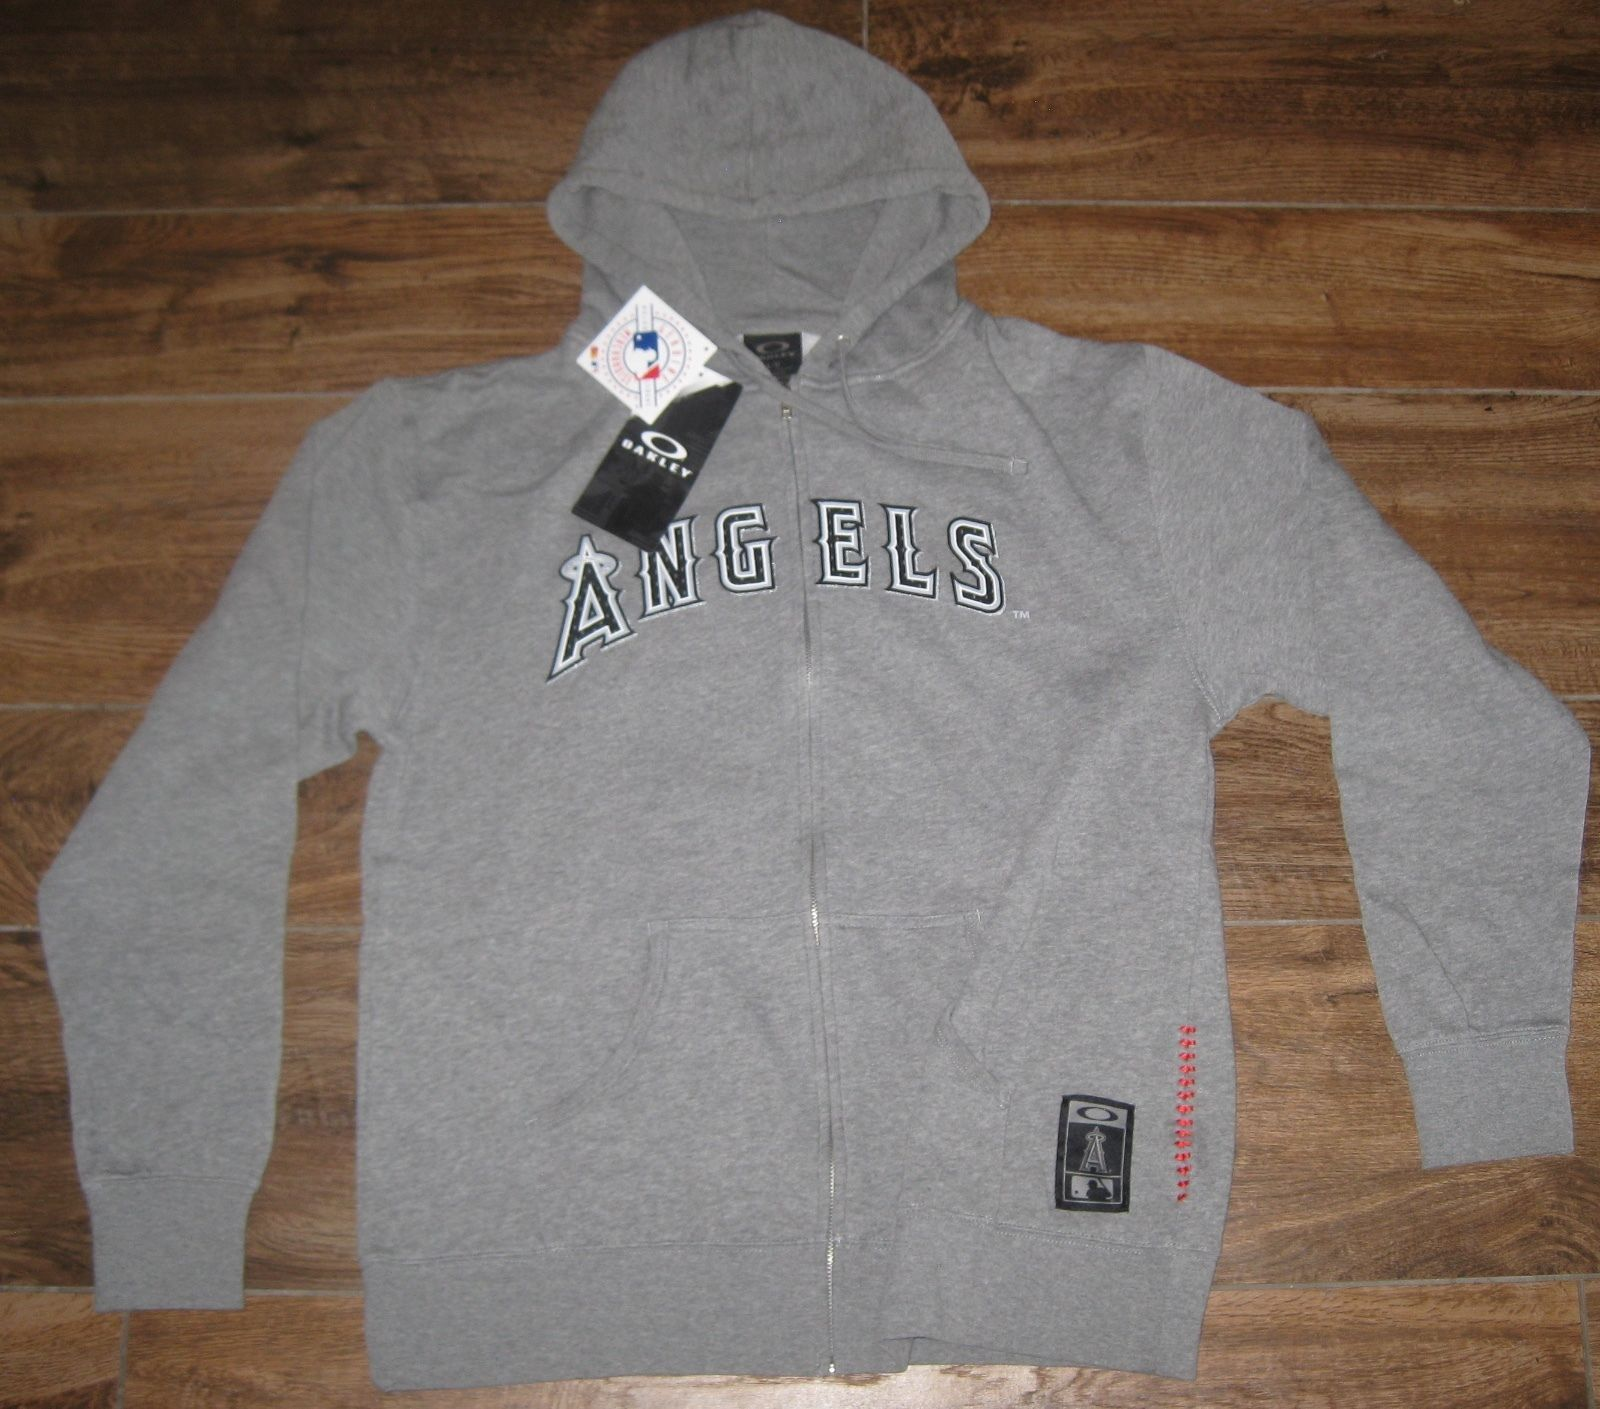 Primary image for OAKLEY LA ANGELS HOLLER BACK FULL ZIP HOODED SWEATSHIRT MENS L MLB HOODIE GREY